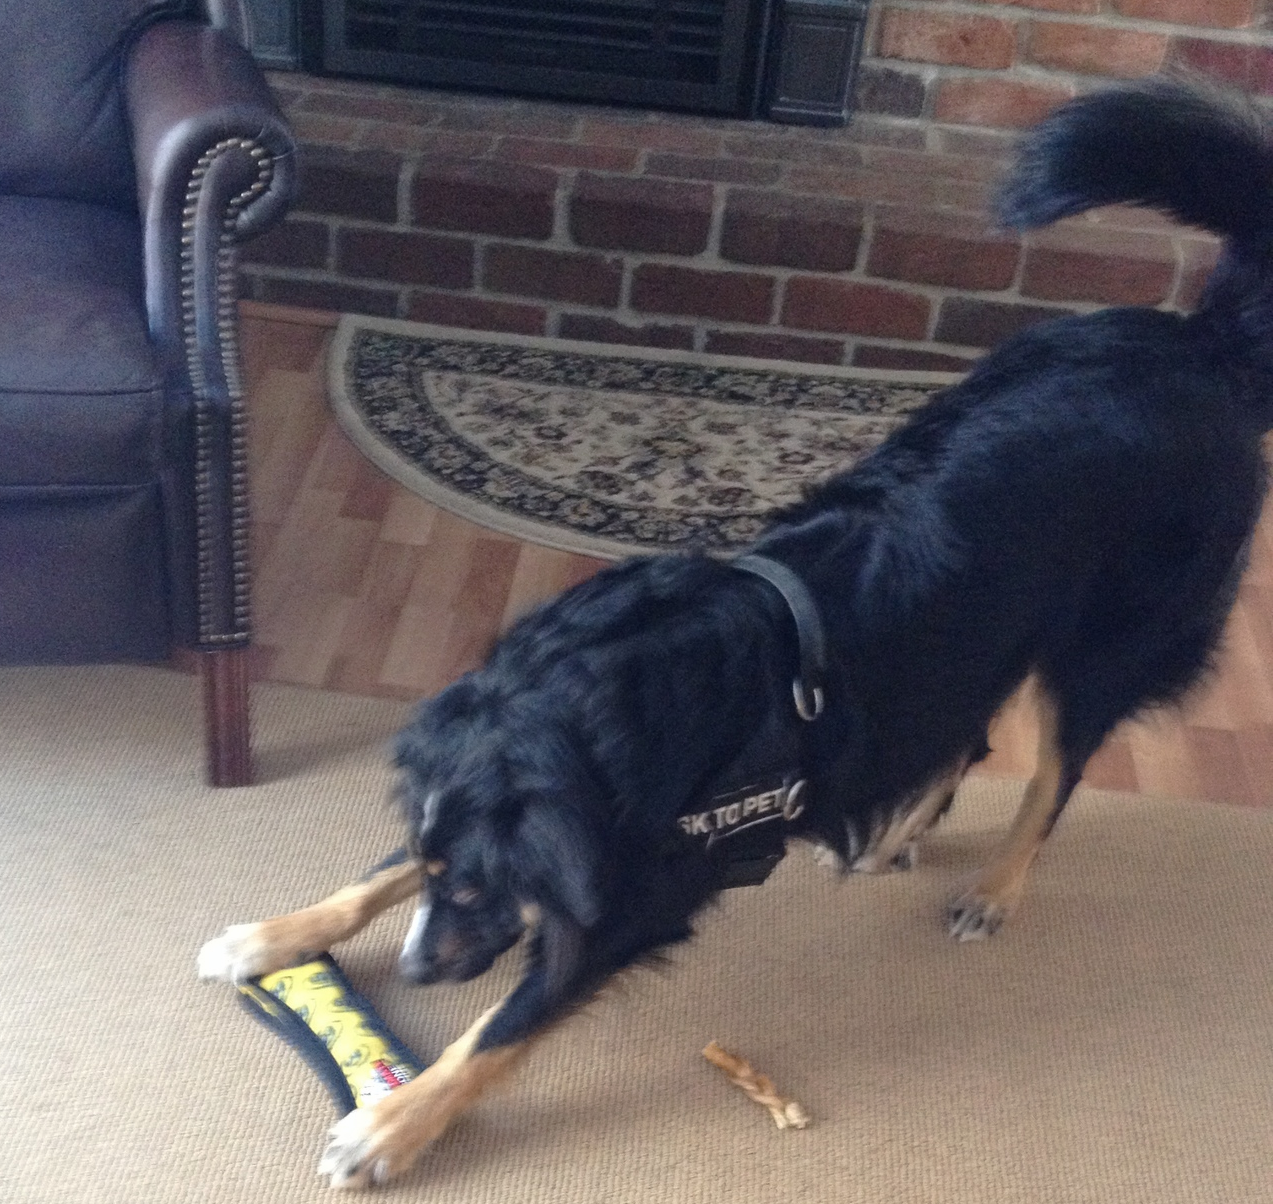 Ashe playing with his bone!